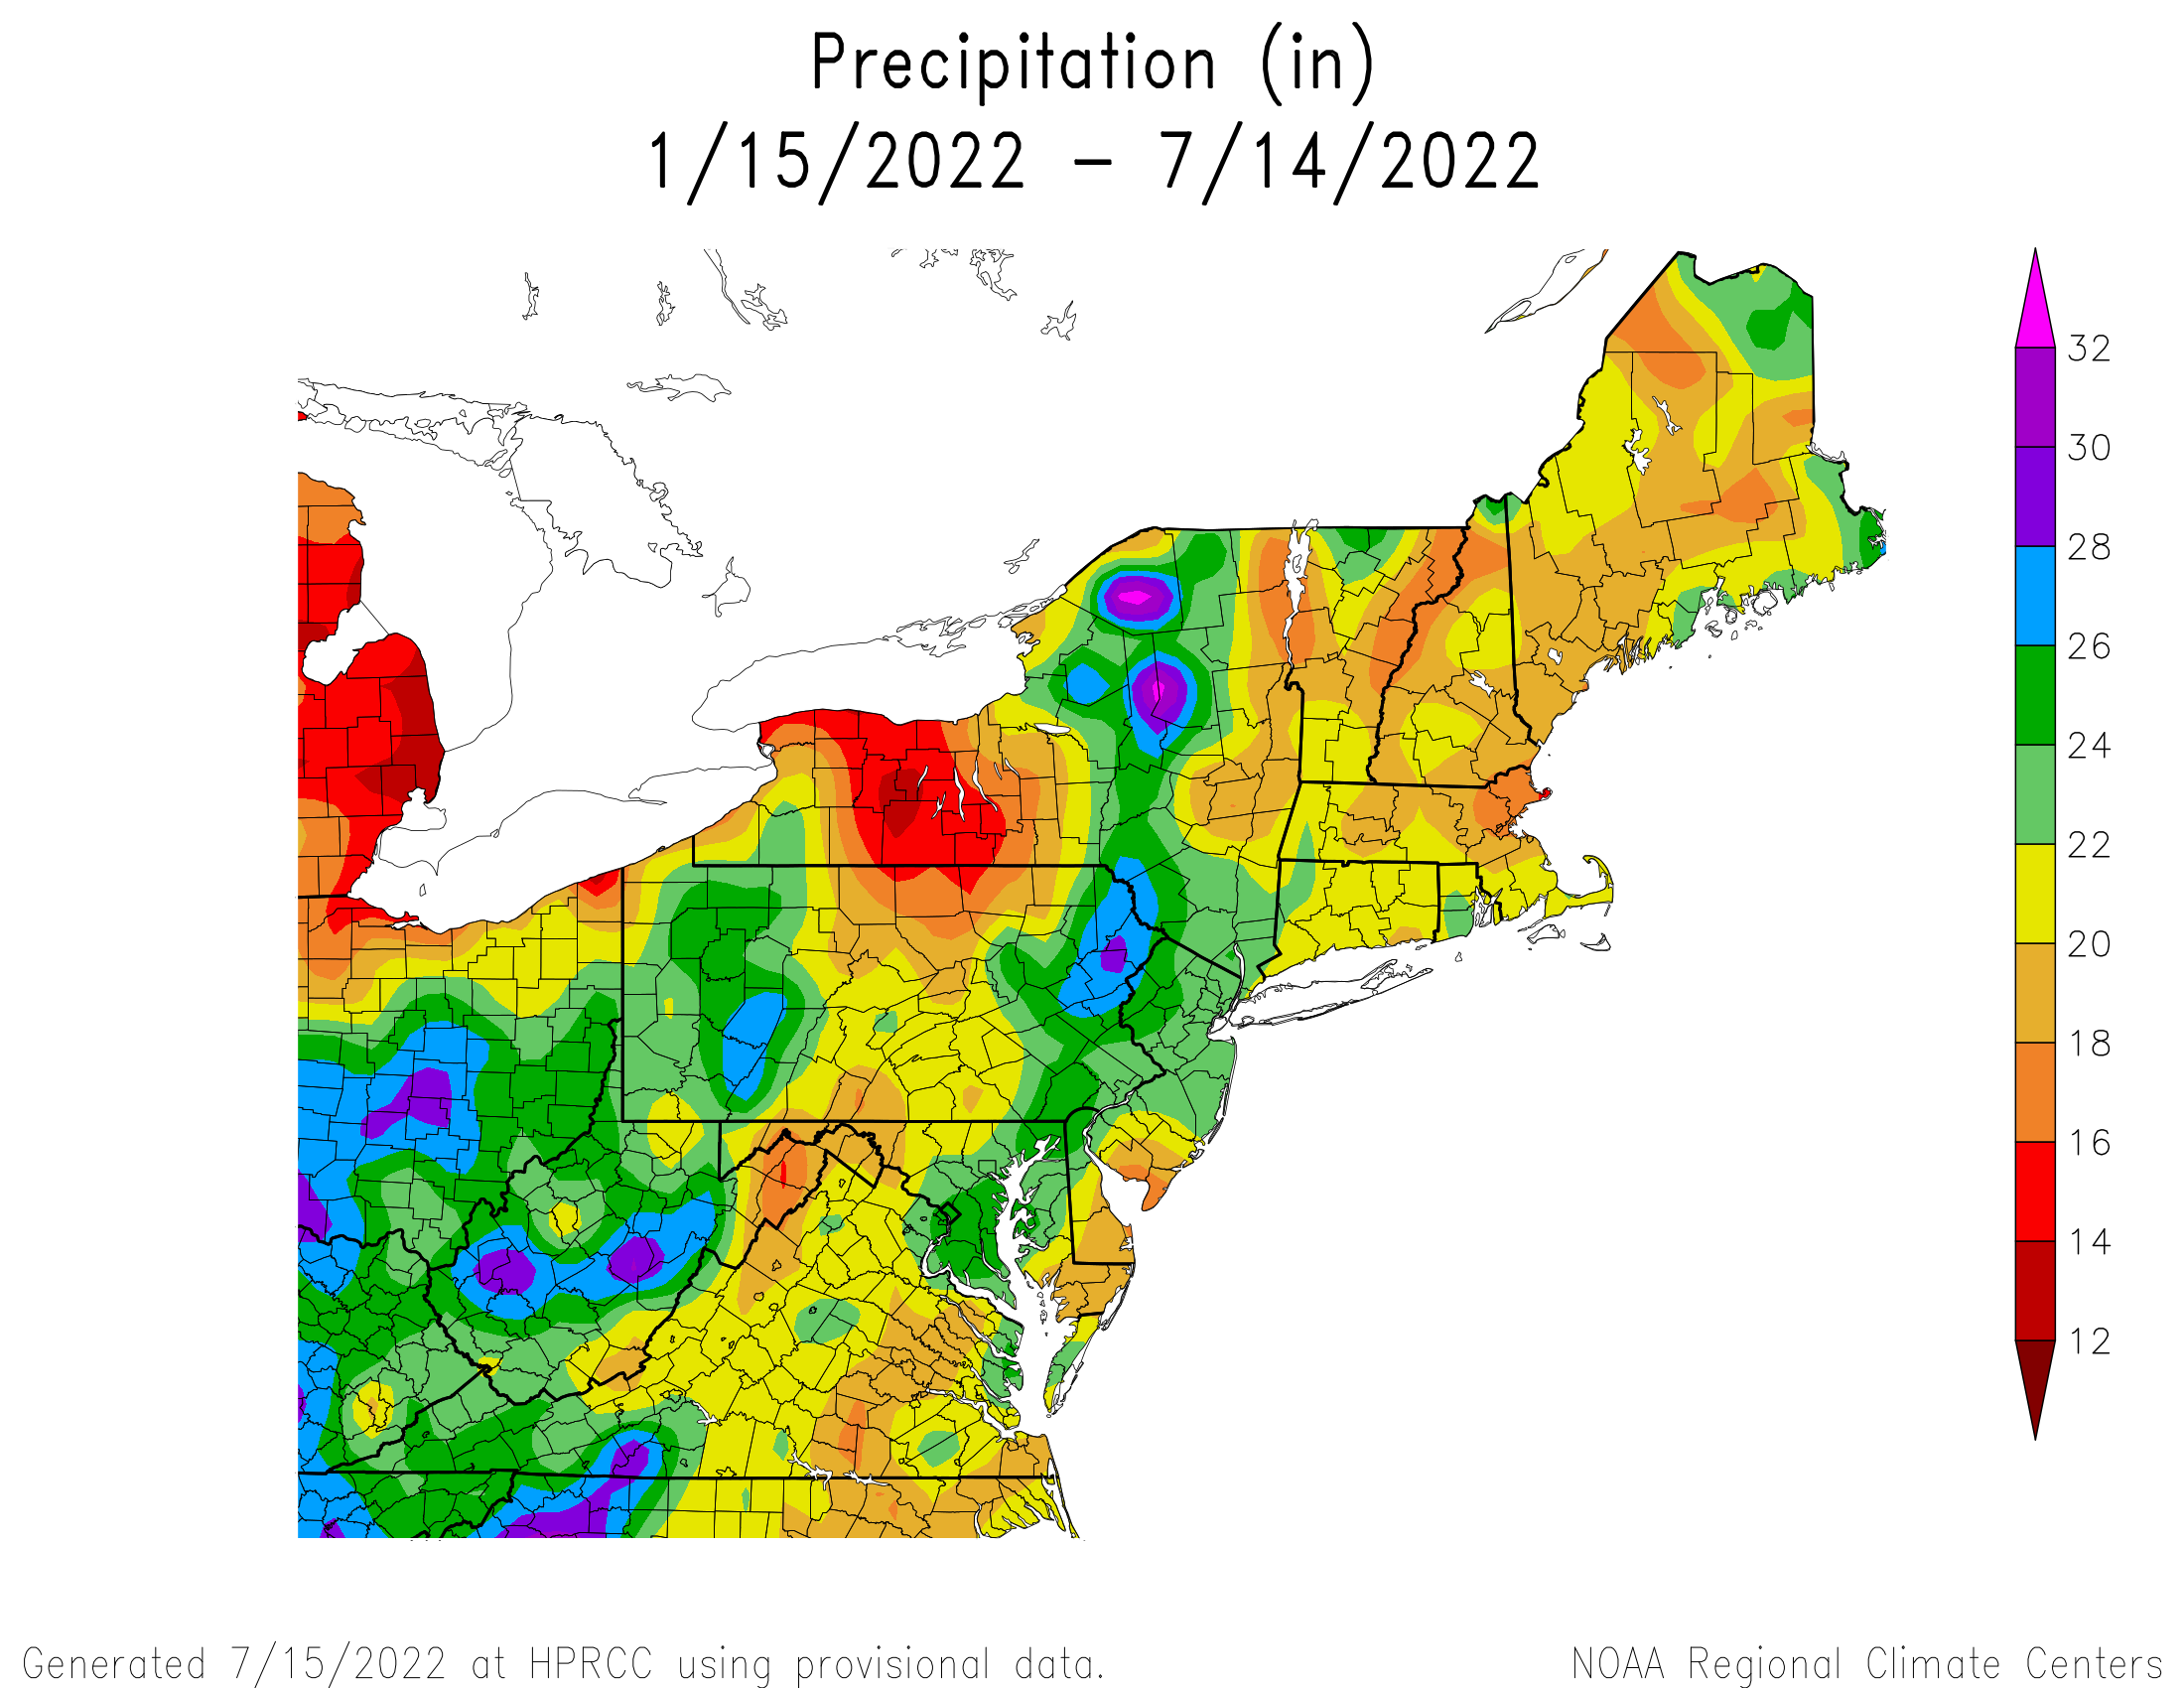 6-Month Total Precipitation